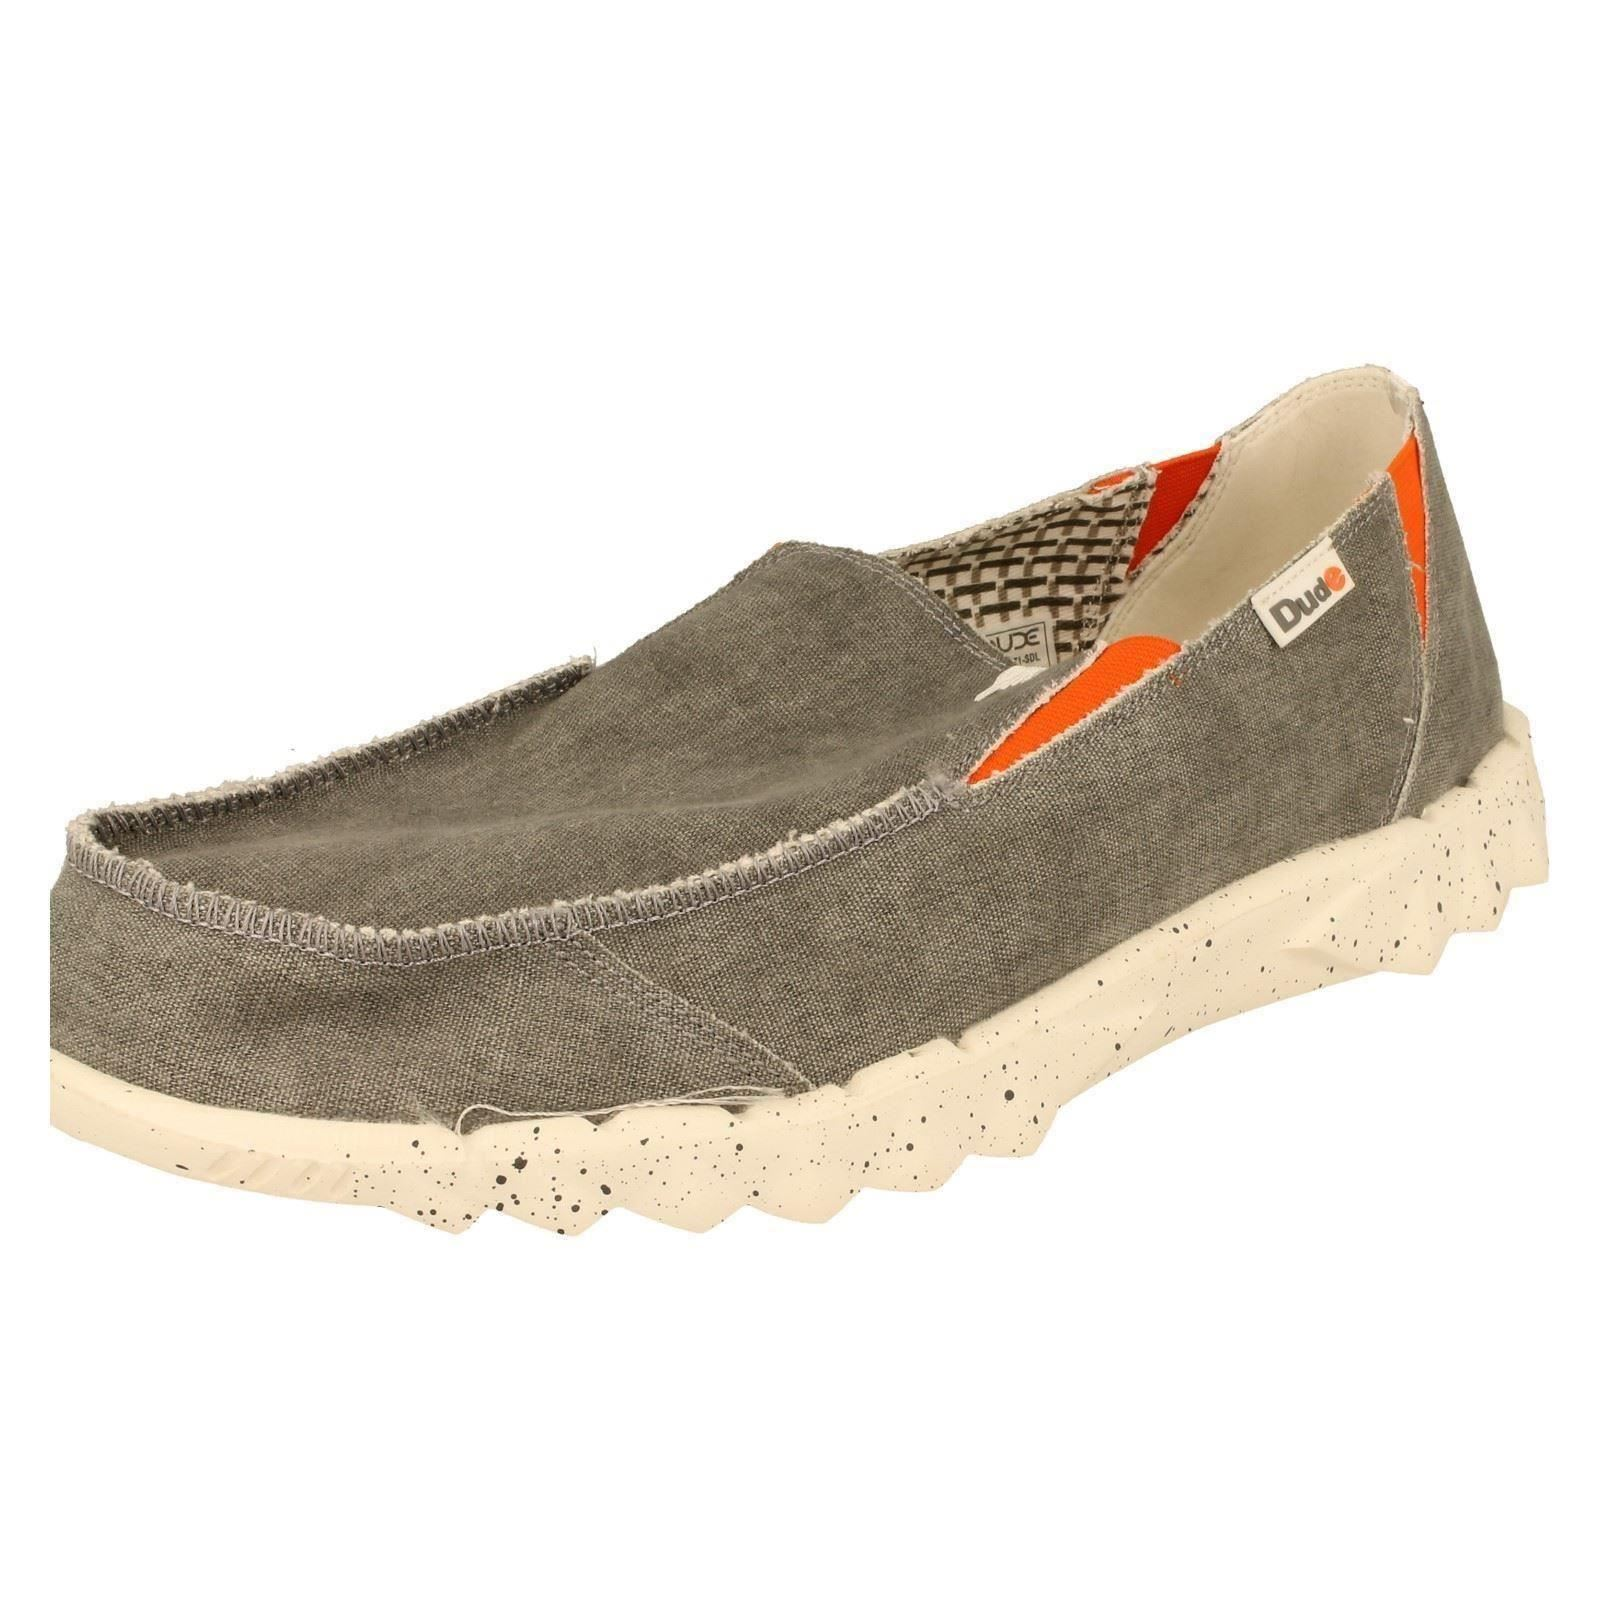 Uomo Hey Dude Lightweight -W Canvas Schuhes Farty Funk -W Lightweight a6a89d